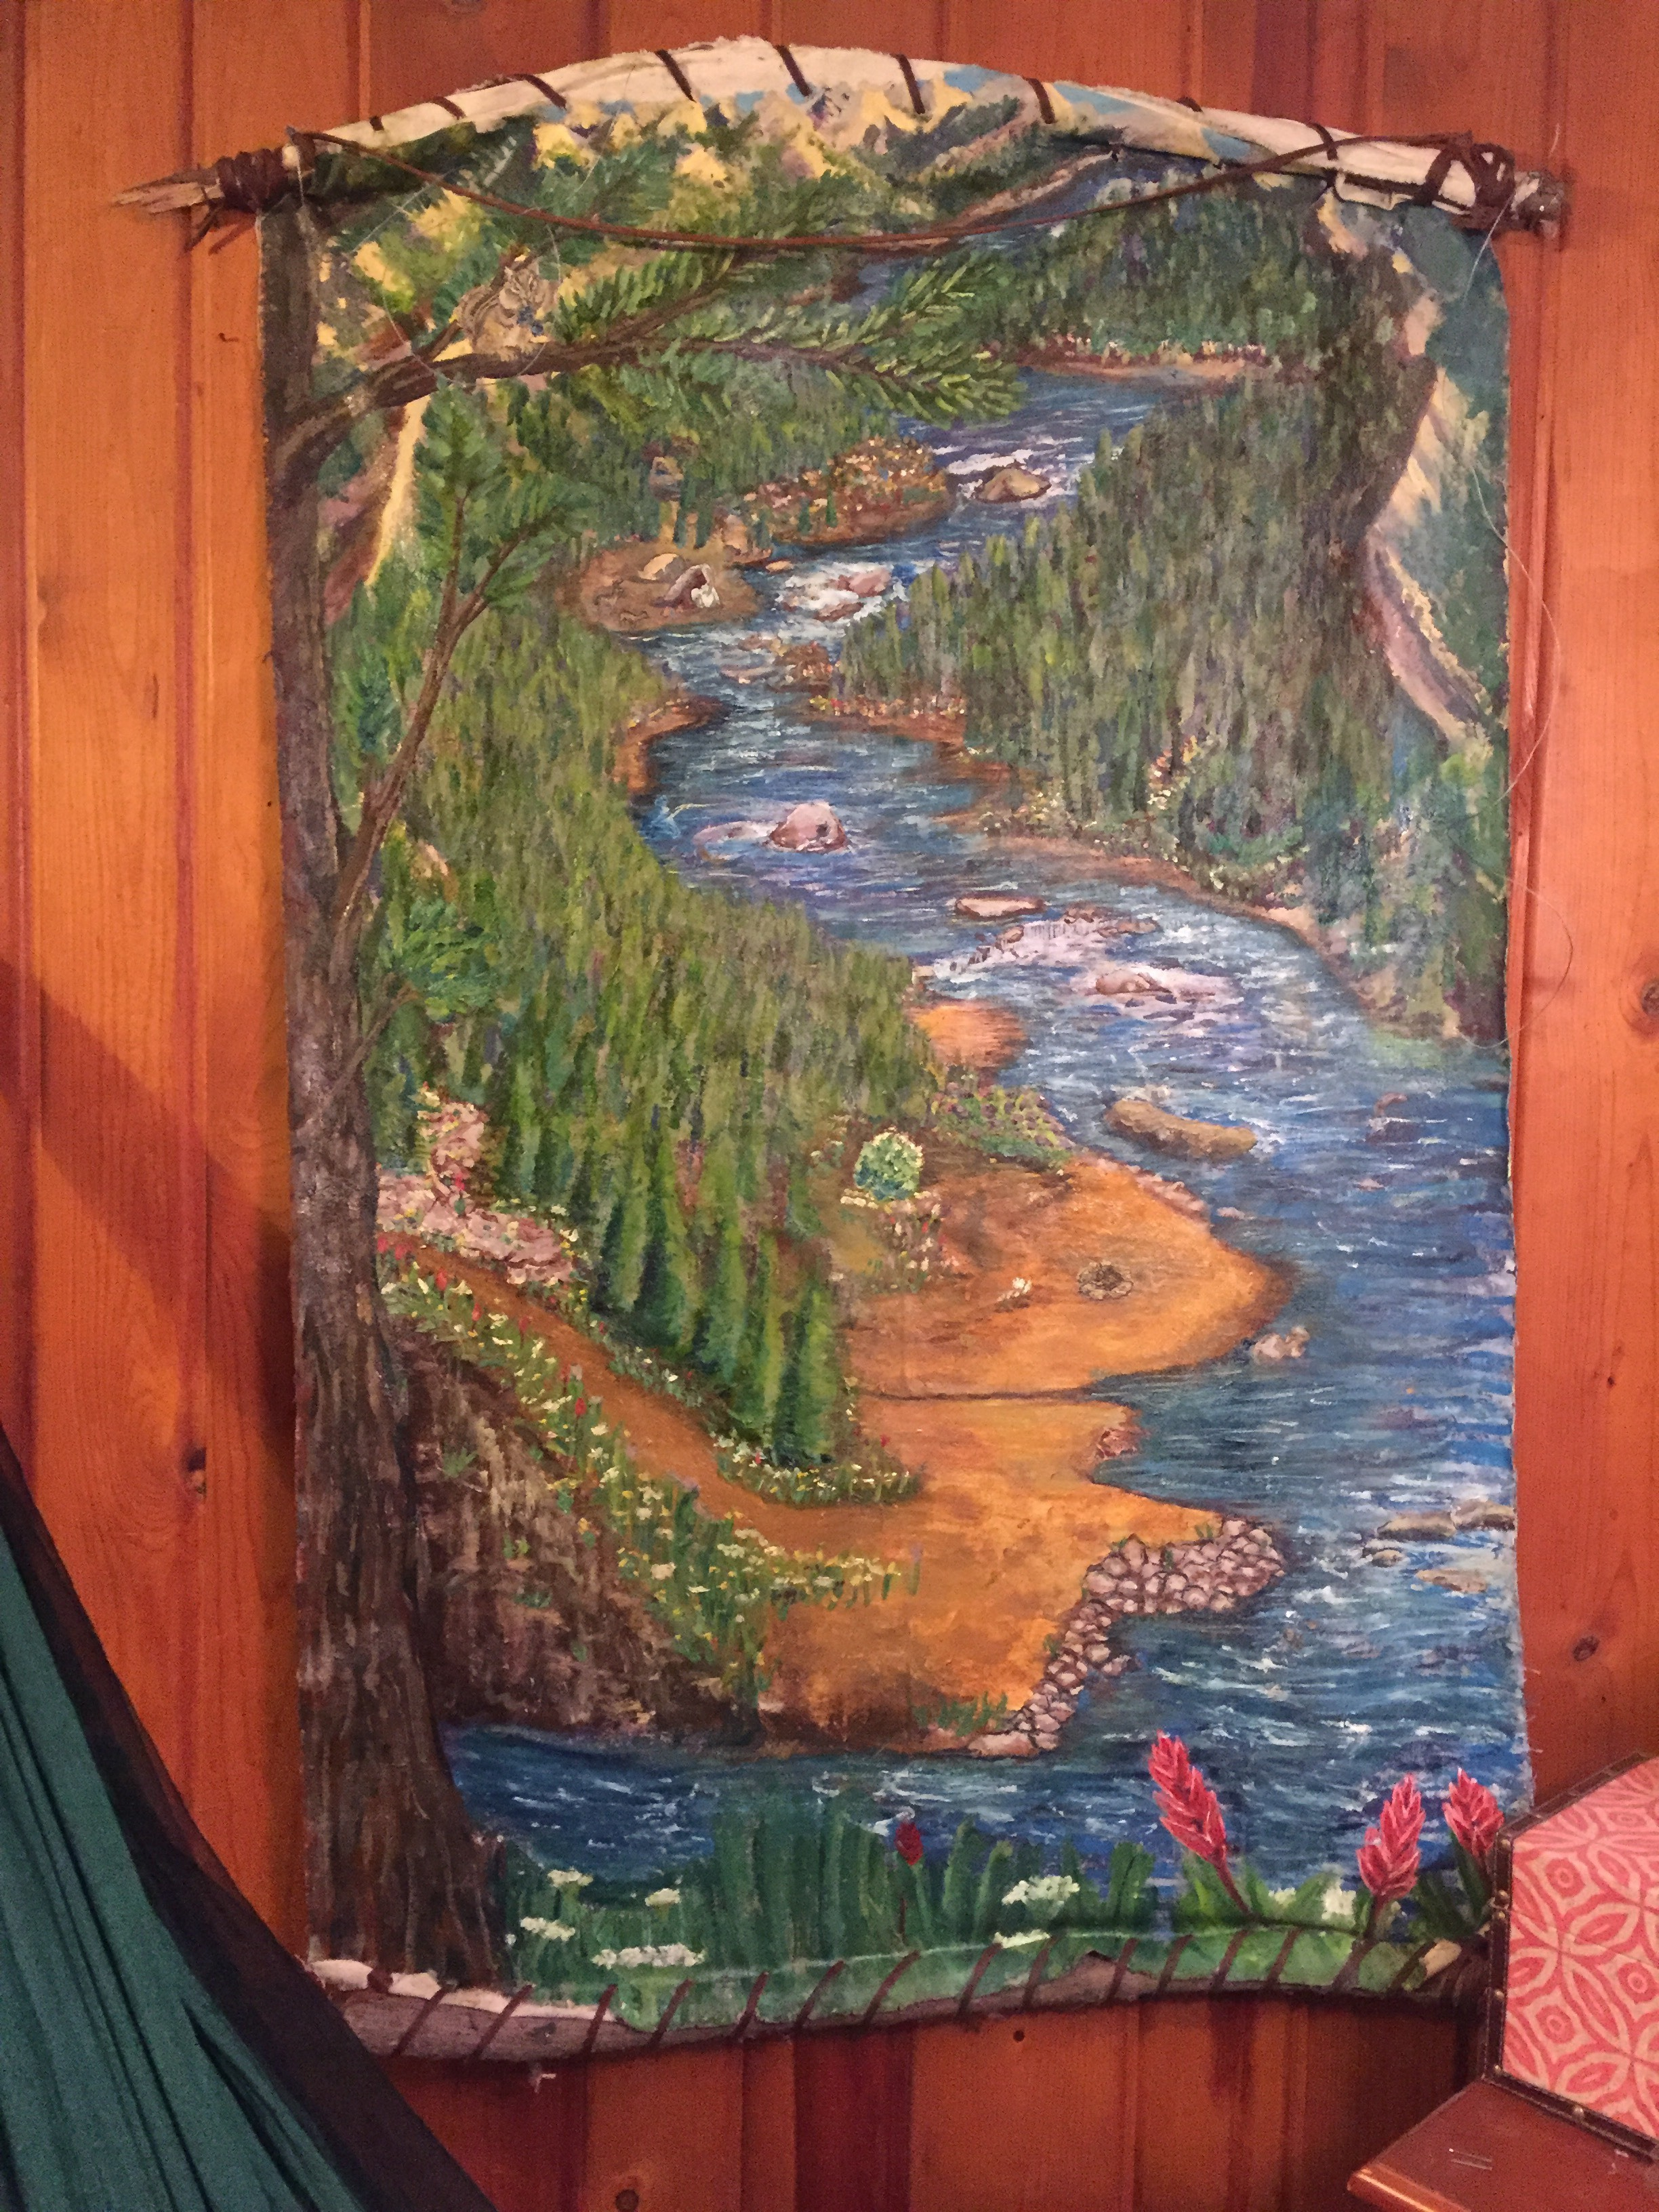 This is where the painting will live happily from now on. The scenic view from an indoor hammock.